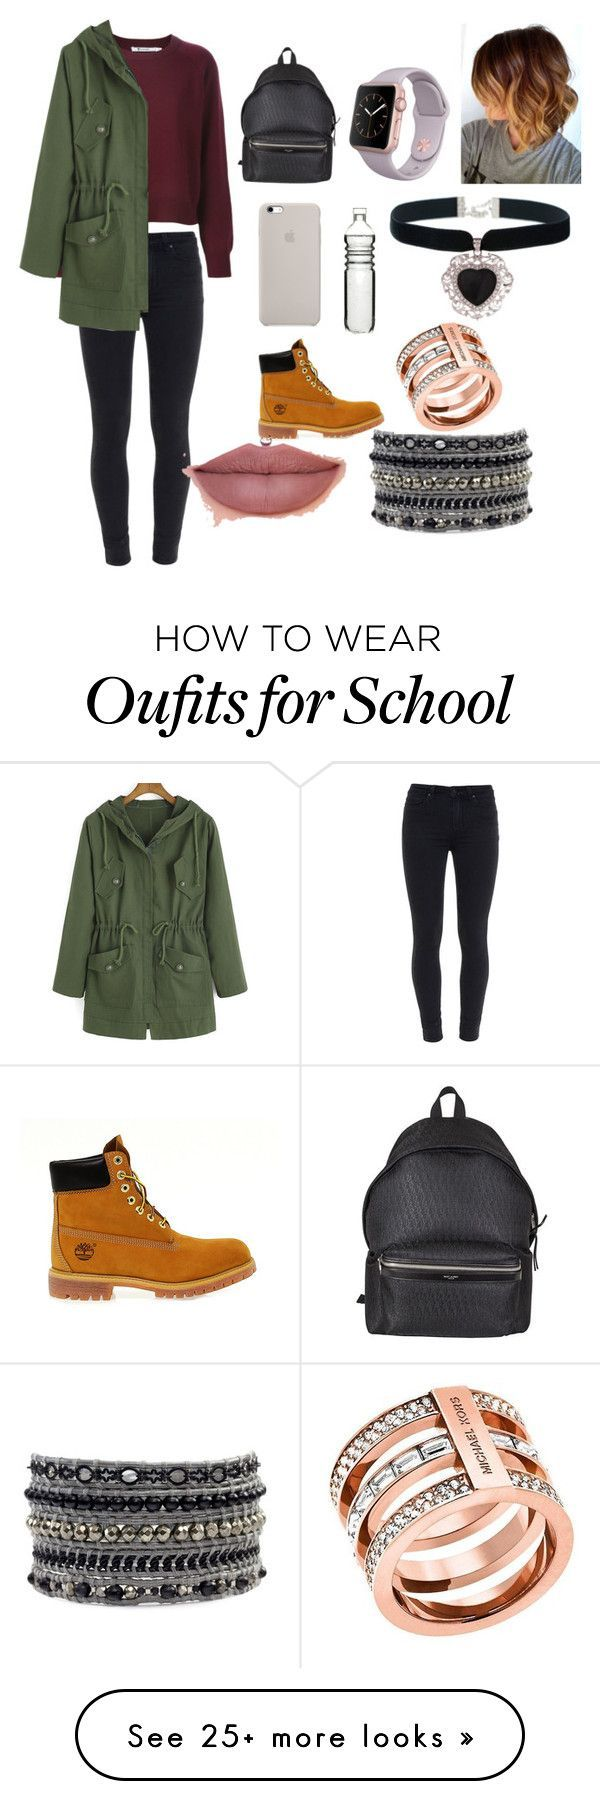 """school"" by foum on Polyvore featuring Paige Denim, Timberland, Yves Saint Laurent, Dot & Bo, Rock 'N Rose and Michael Kors"